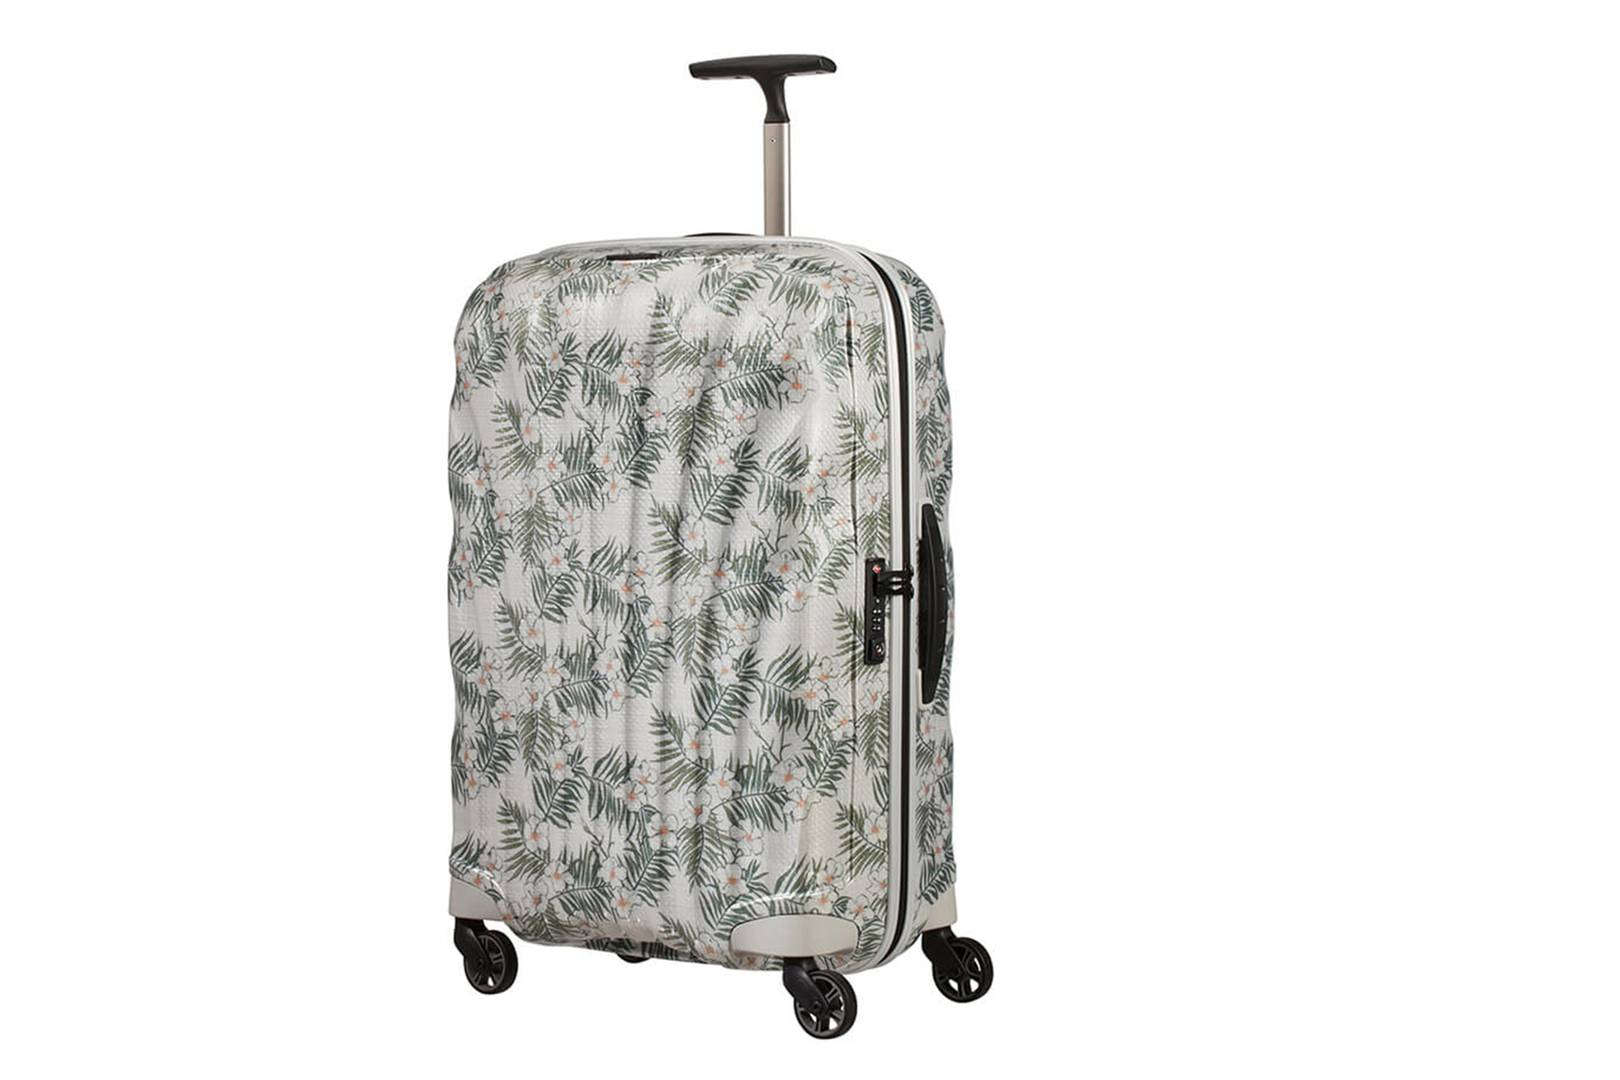 9c2f2bec0 The best suitcases to buy now - luxury luggage edit | Tatler